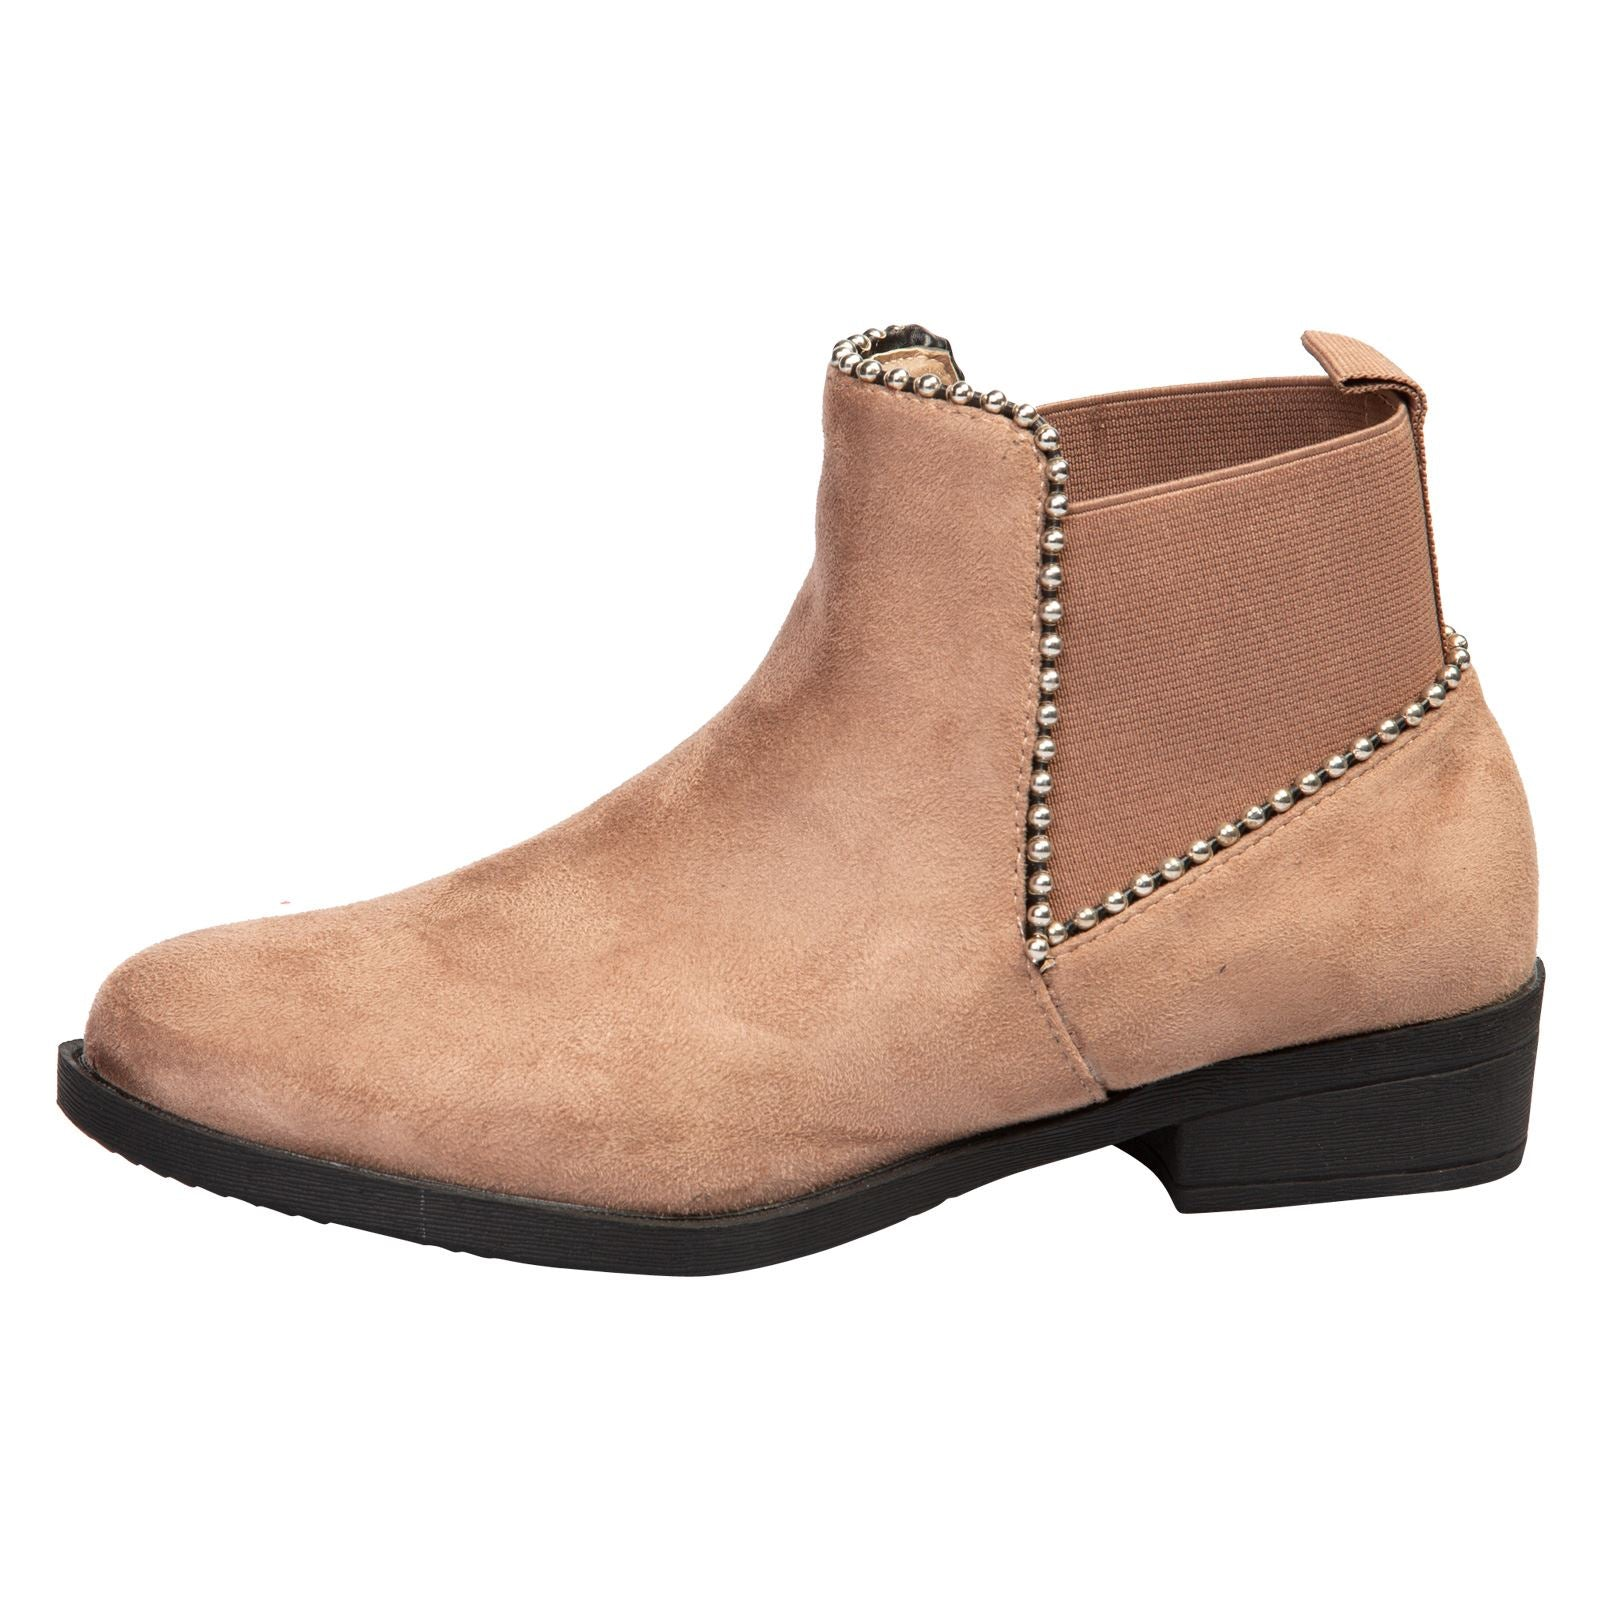 Presley Chelsea Boots in Khaki Tan Faux Suede - Feet First Fashion